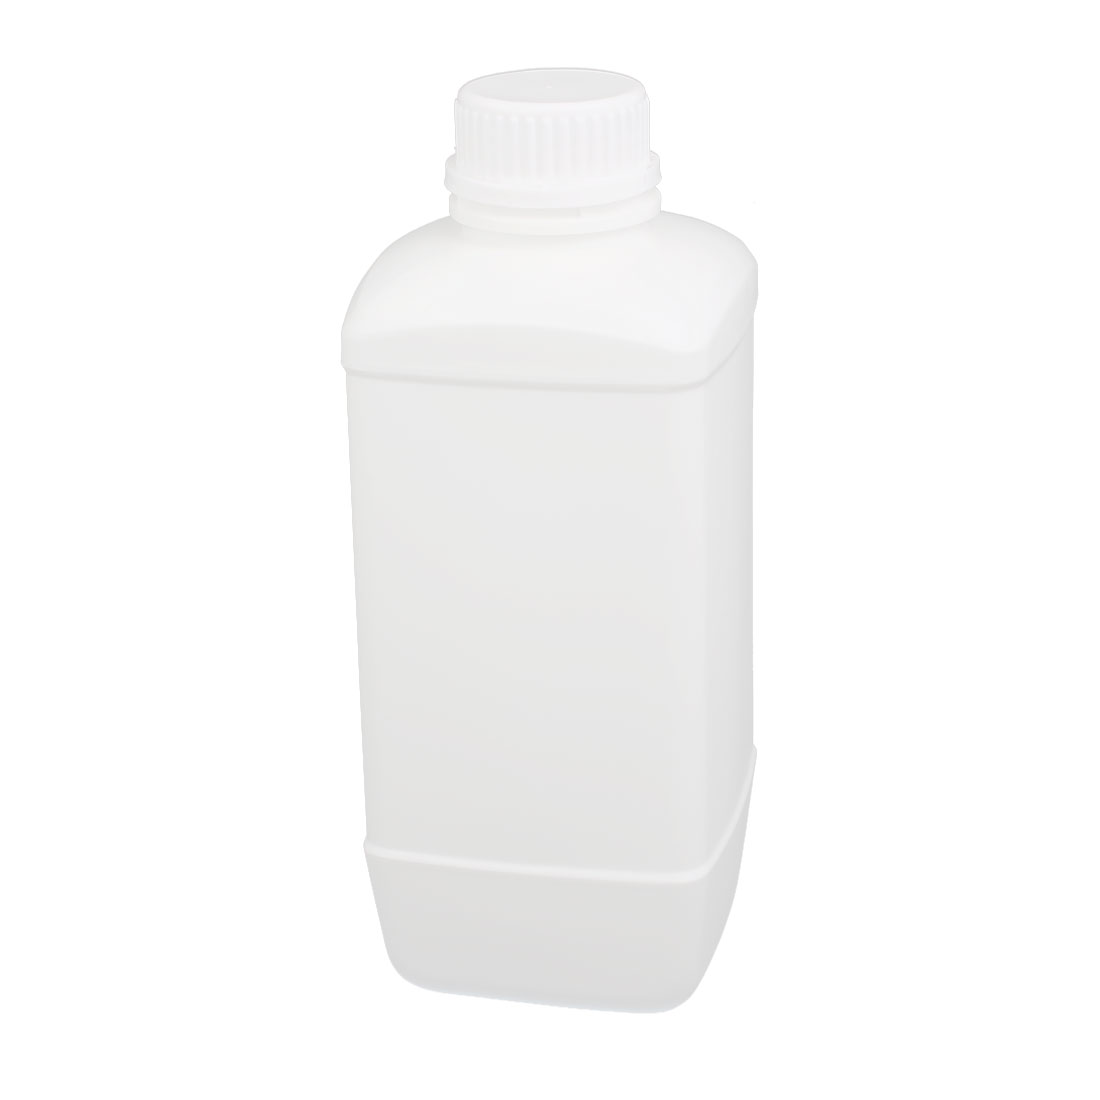 1000ml 28mm Dia Mouth HDPE Plastic Oblong Shaped Laboratory Bottle White